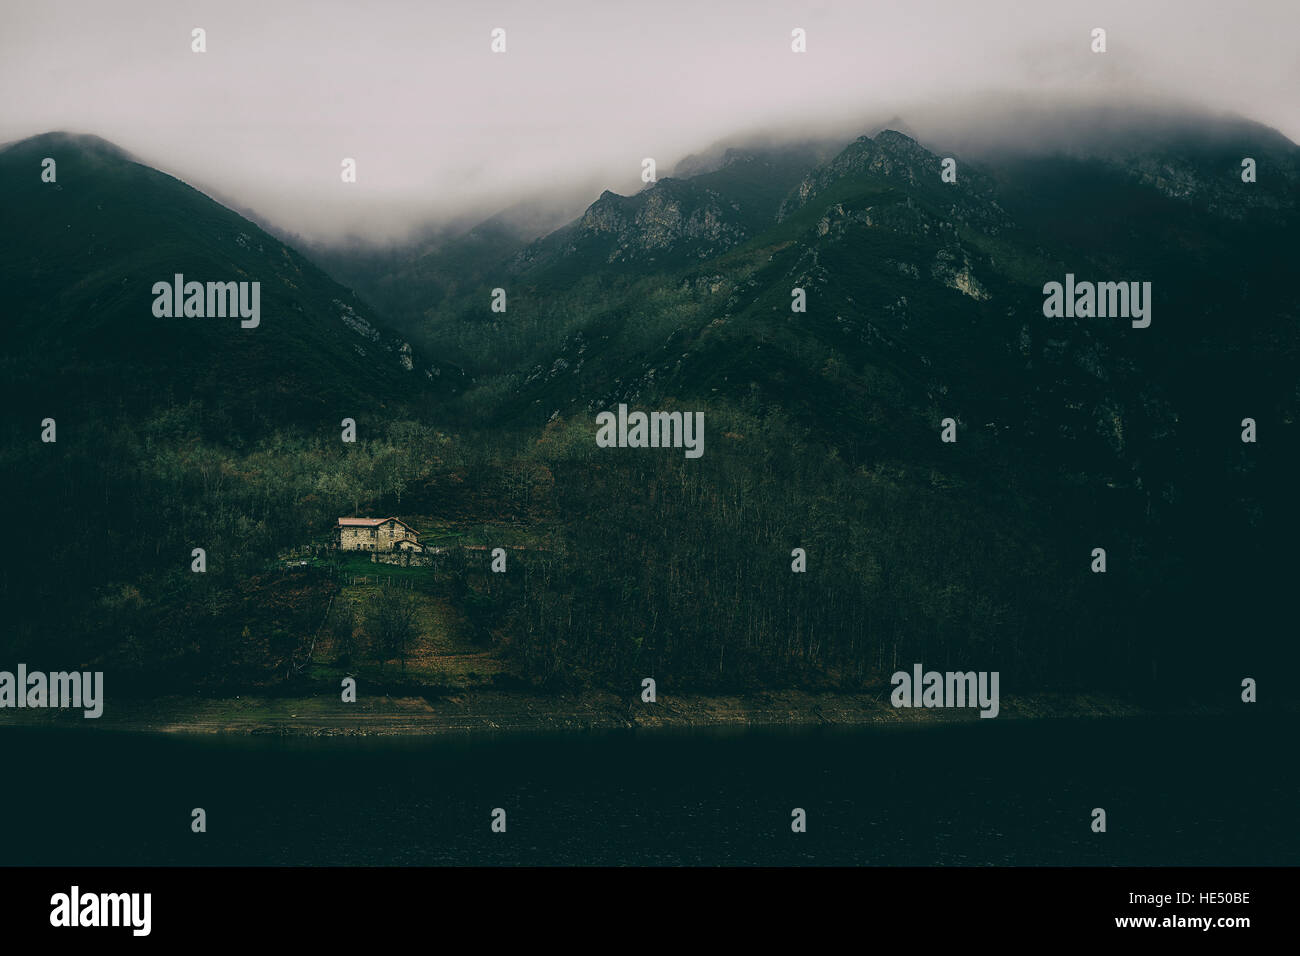 lonely house in the mountains, an isolated place perfect to get lost and find yourself - Stock Image